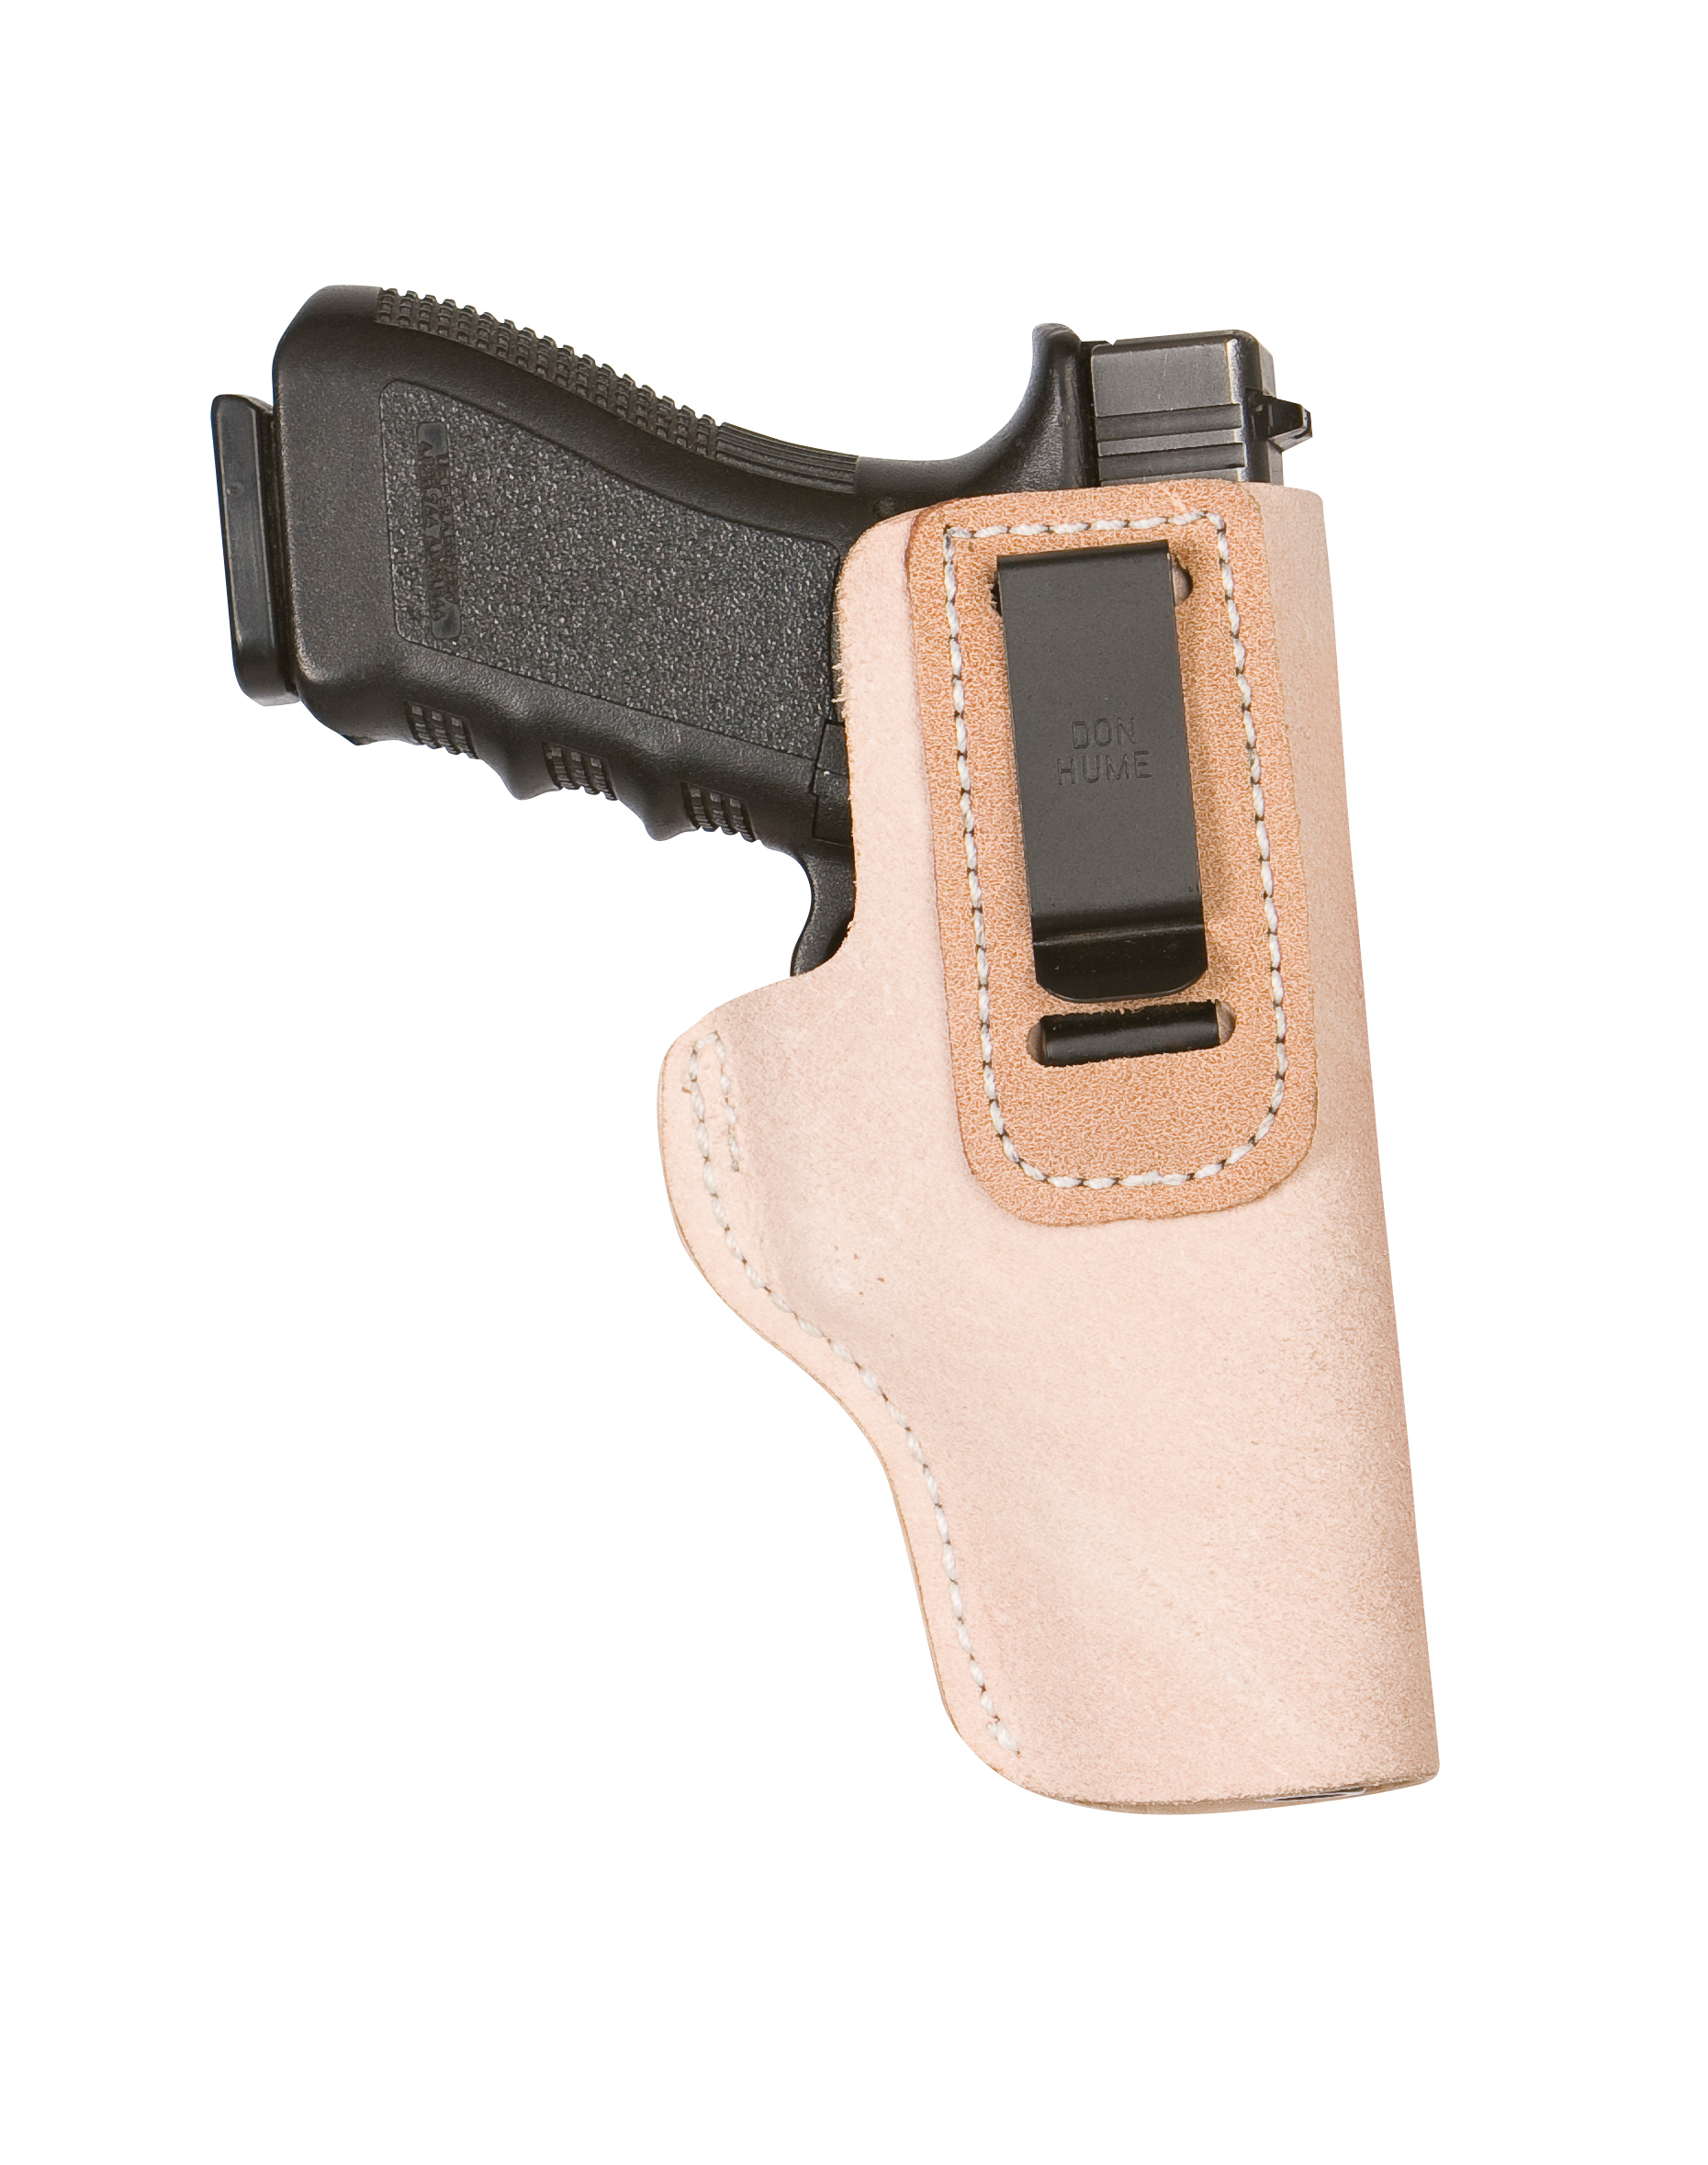 H715 SOFT POCKET-INSIDE THE PANT HOLSTER